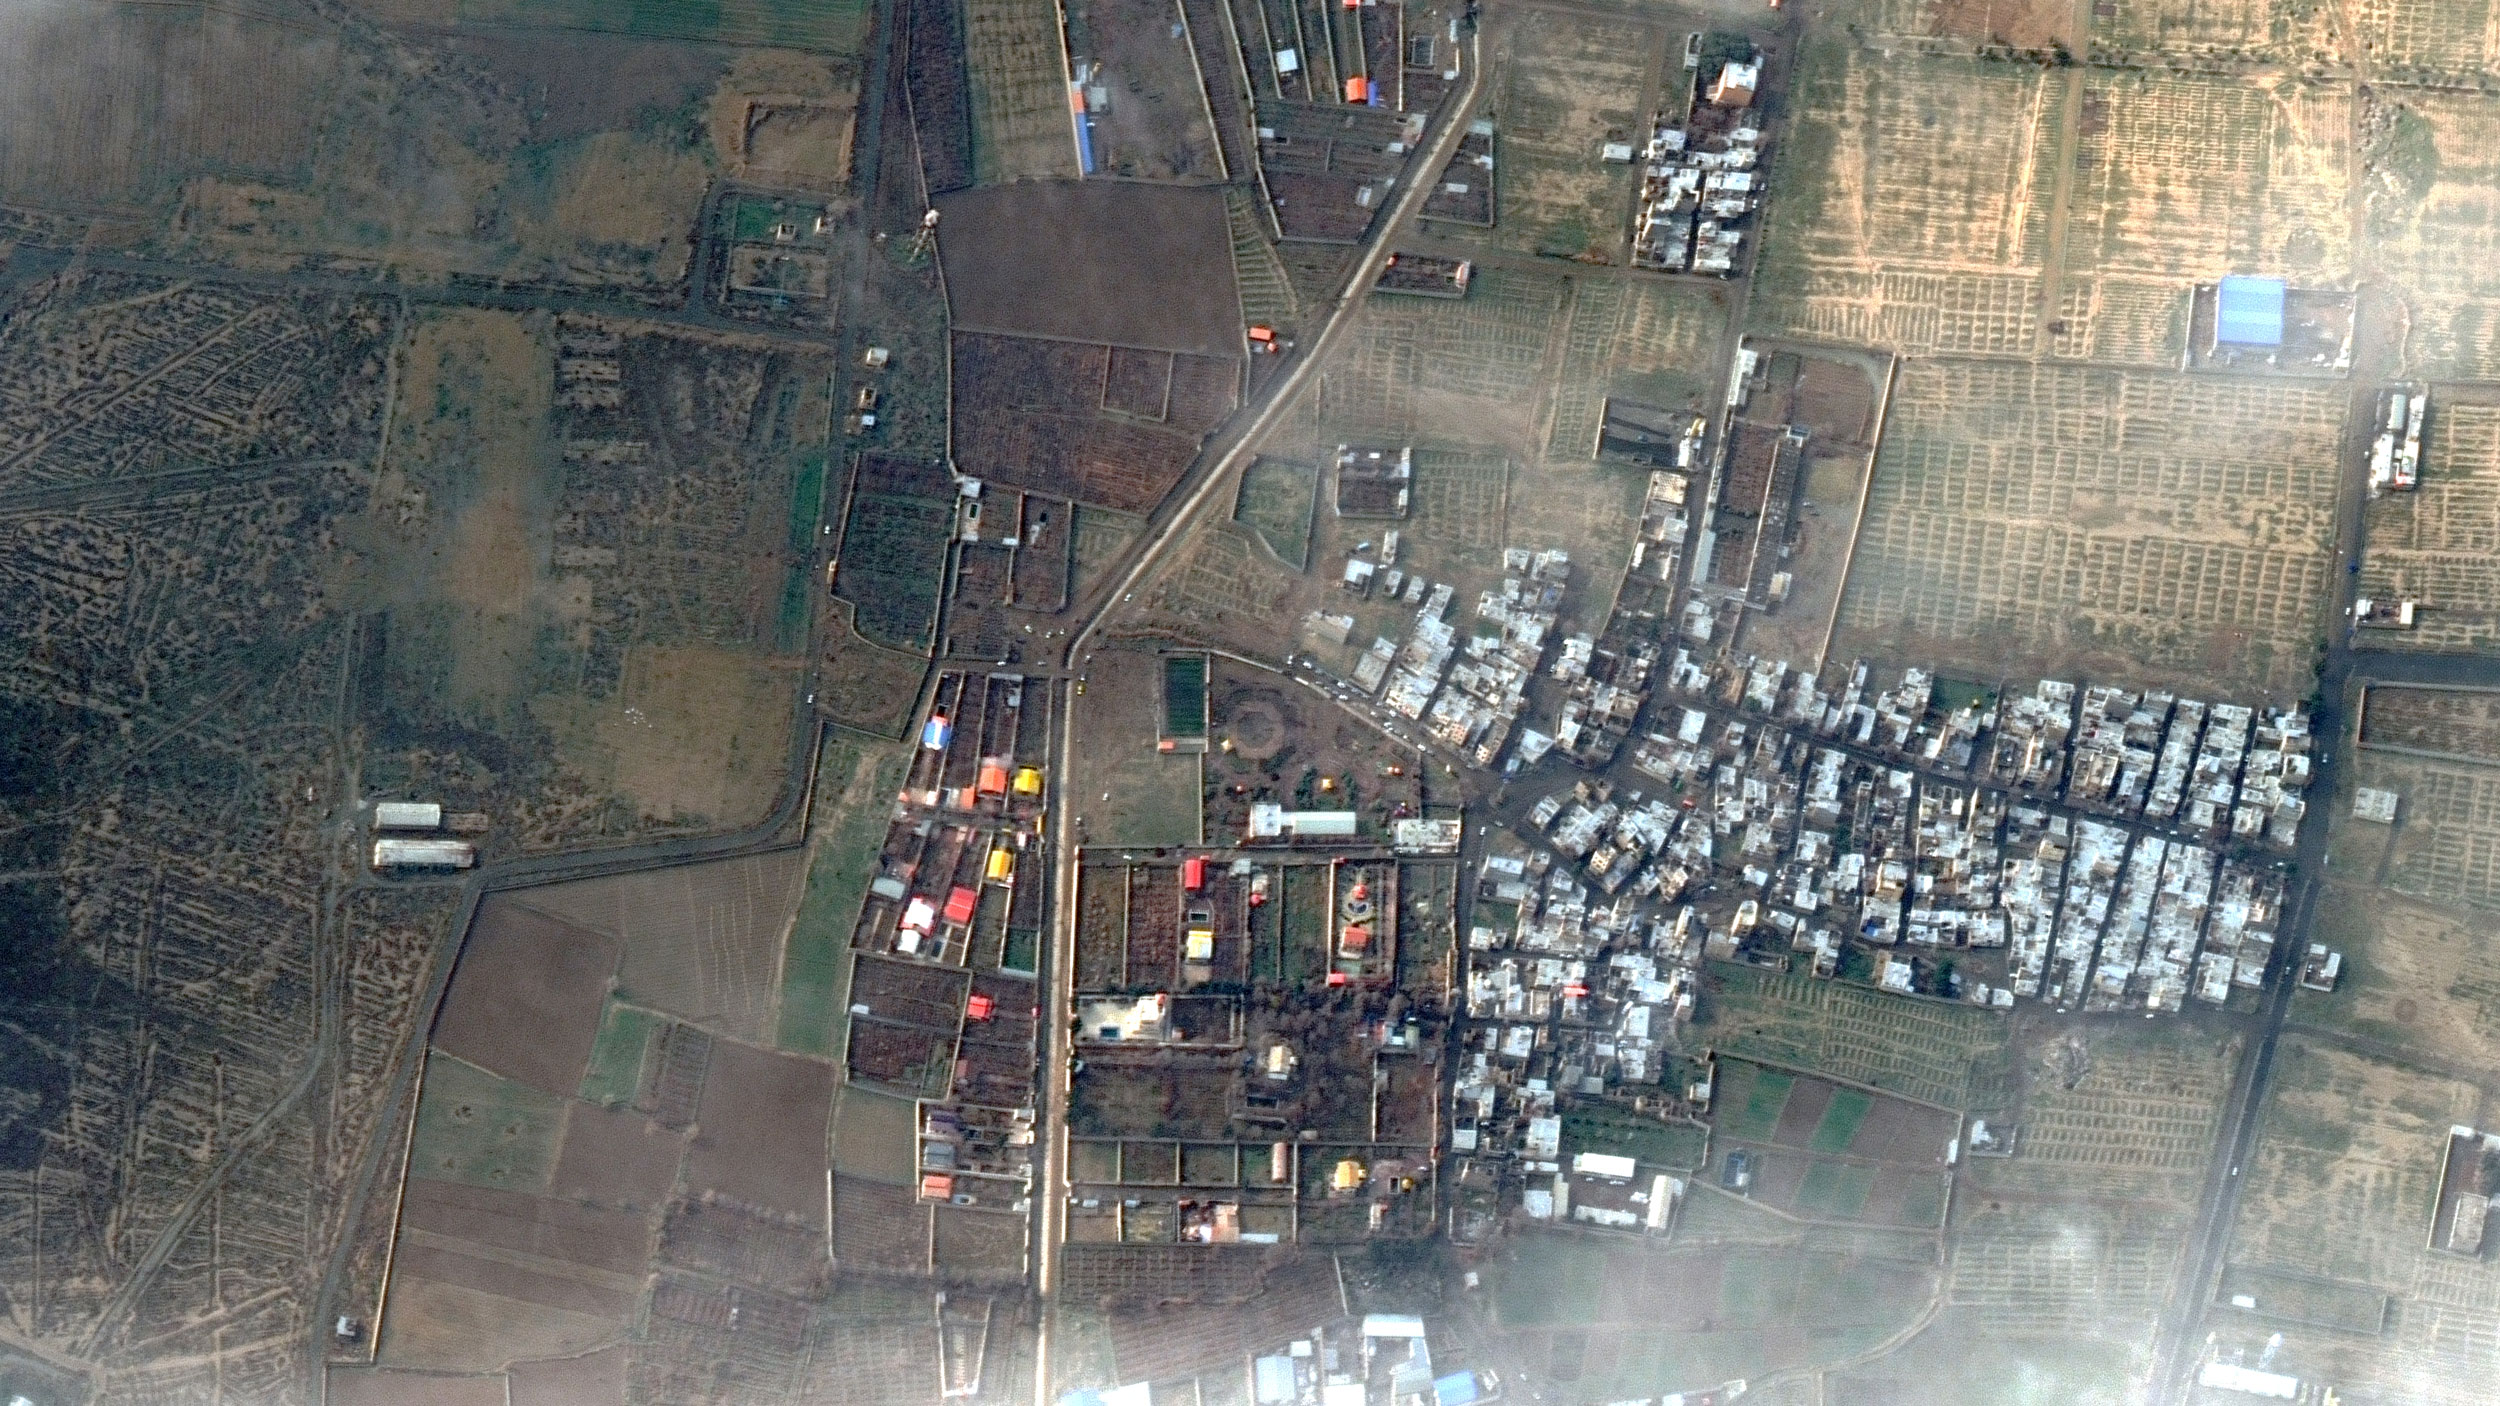 A satellite view of the area near Imam Khomeini Airport in Iran showing a cluster of buildings and the crash site.